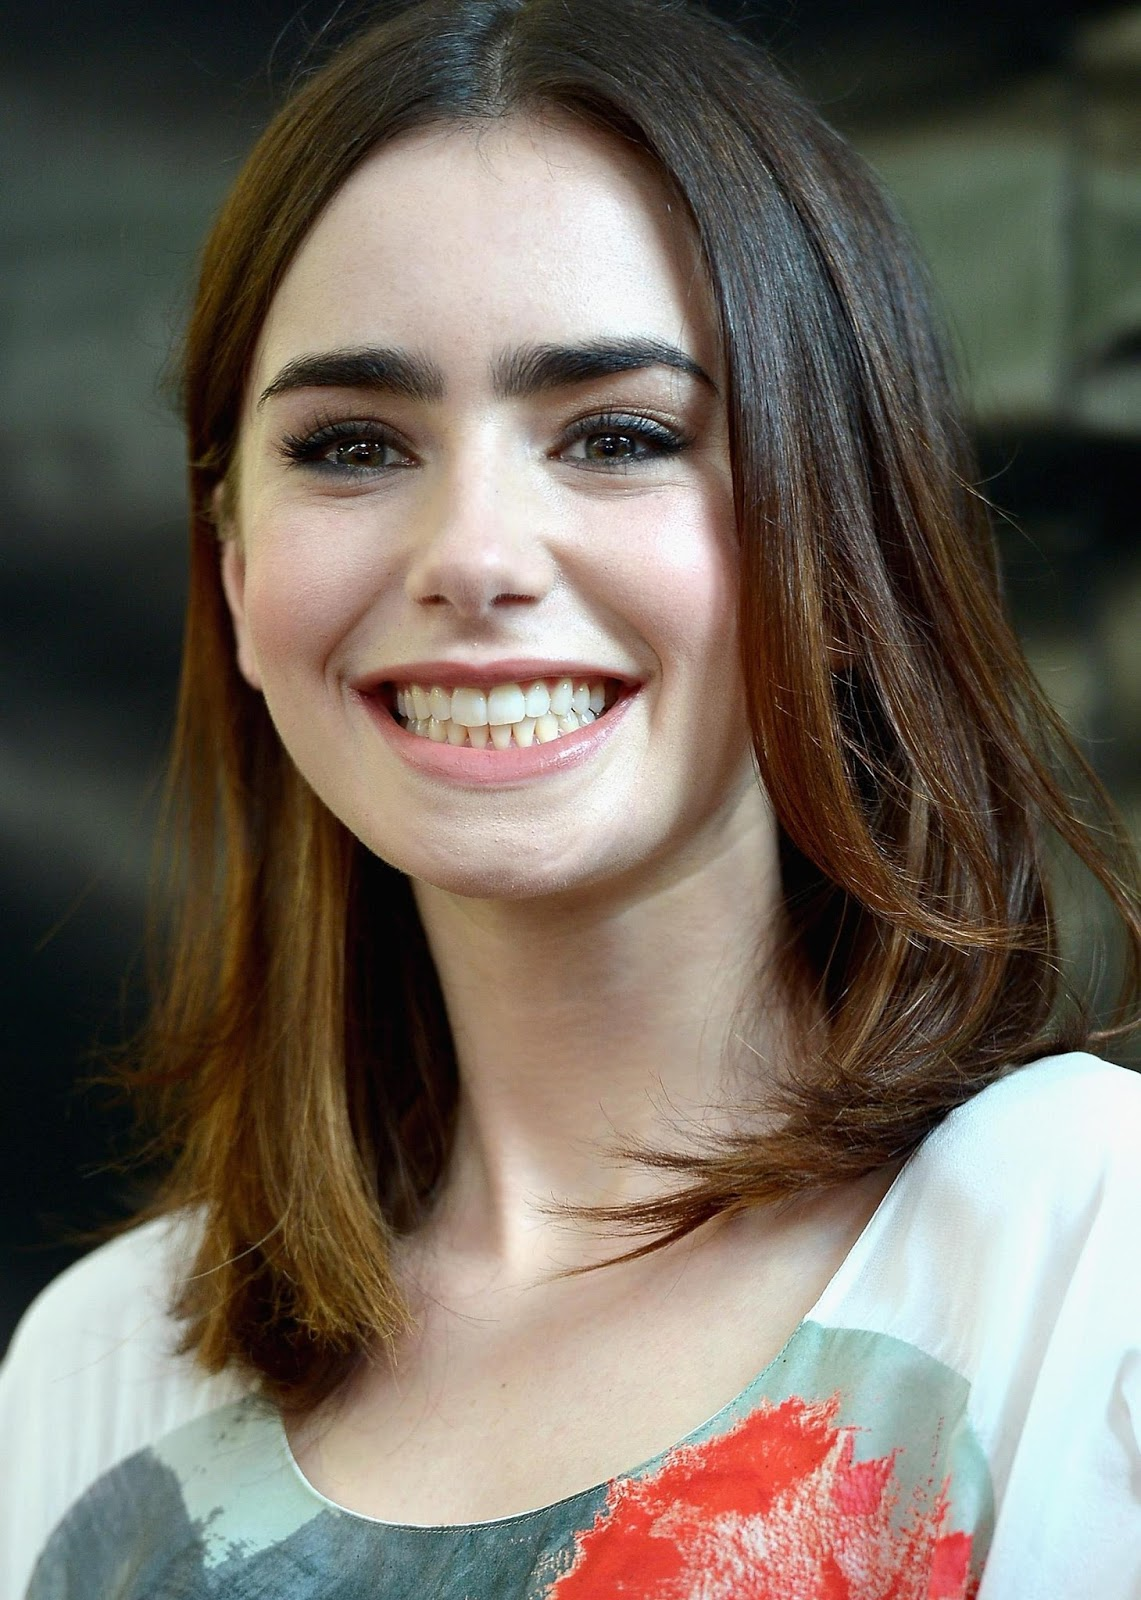 Lily Collins nude (76 fotos), pictures Topless, YouTube, butt 2017